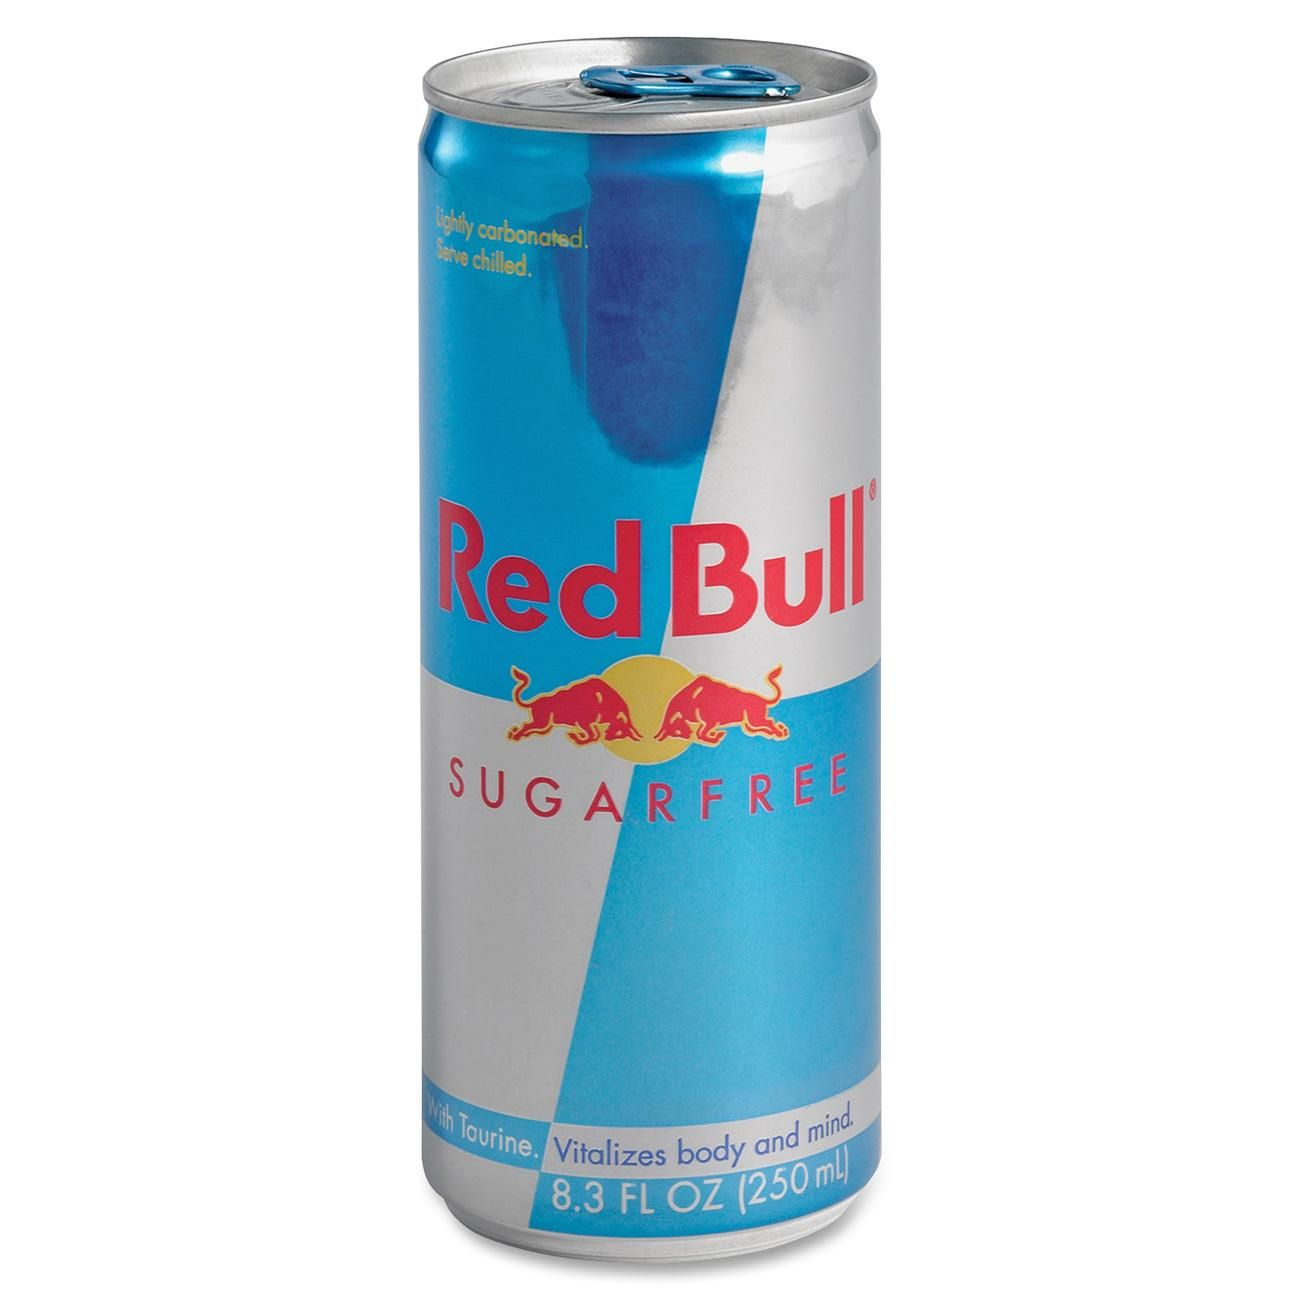 Red Bull Energy Drink, 8.3oz. Can, 24/CT, Sugar-Free RBD122114